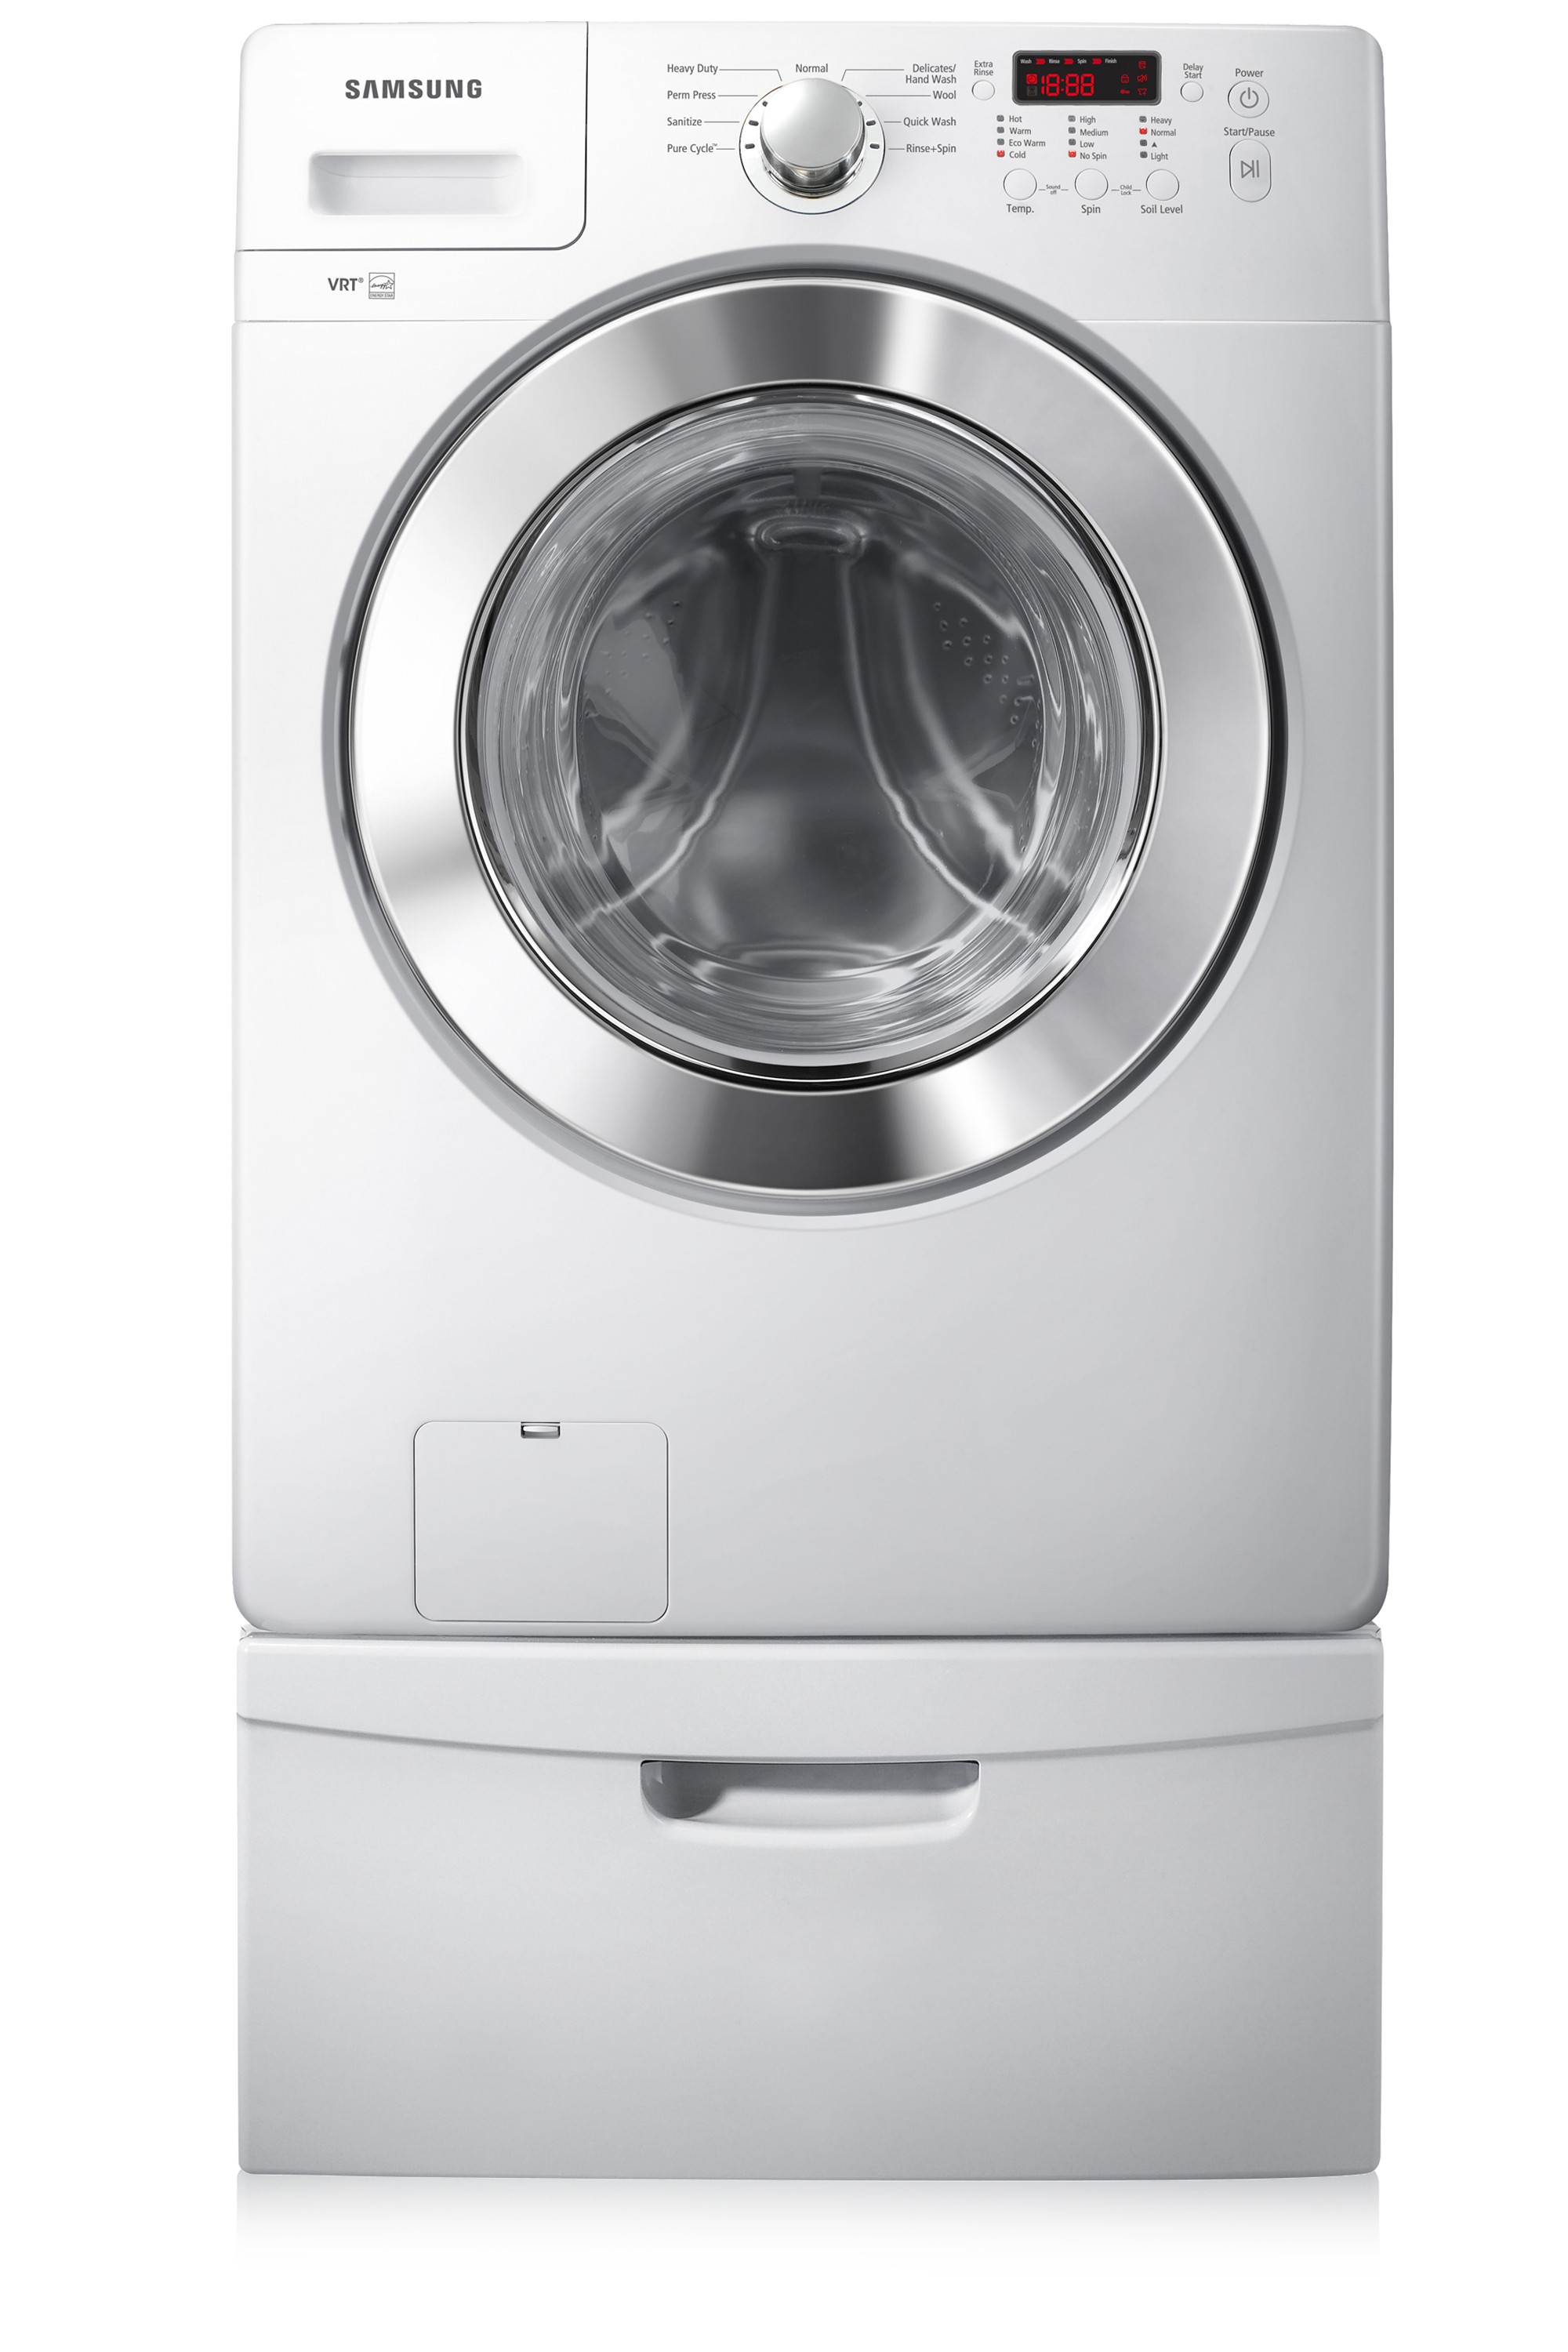 Wf364bvbgwr Samsung Washer Canada Best Price Reviews